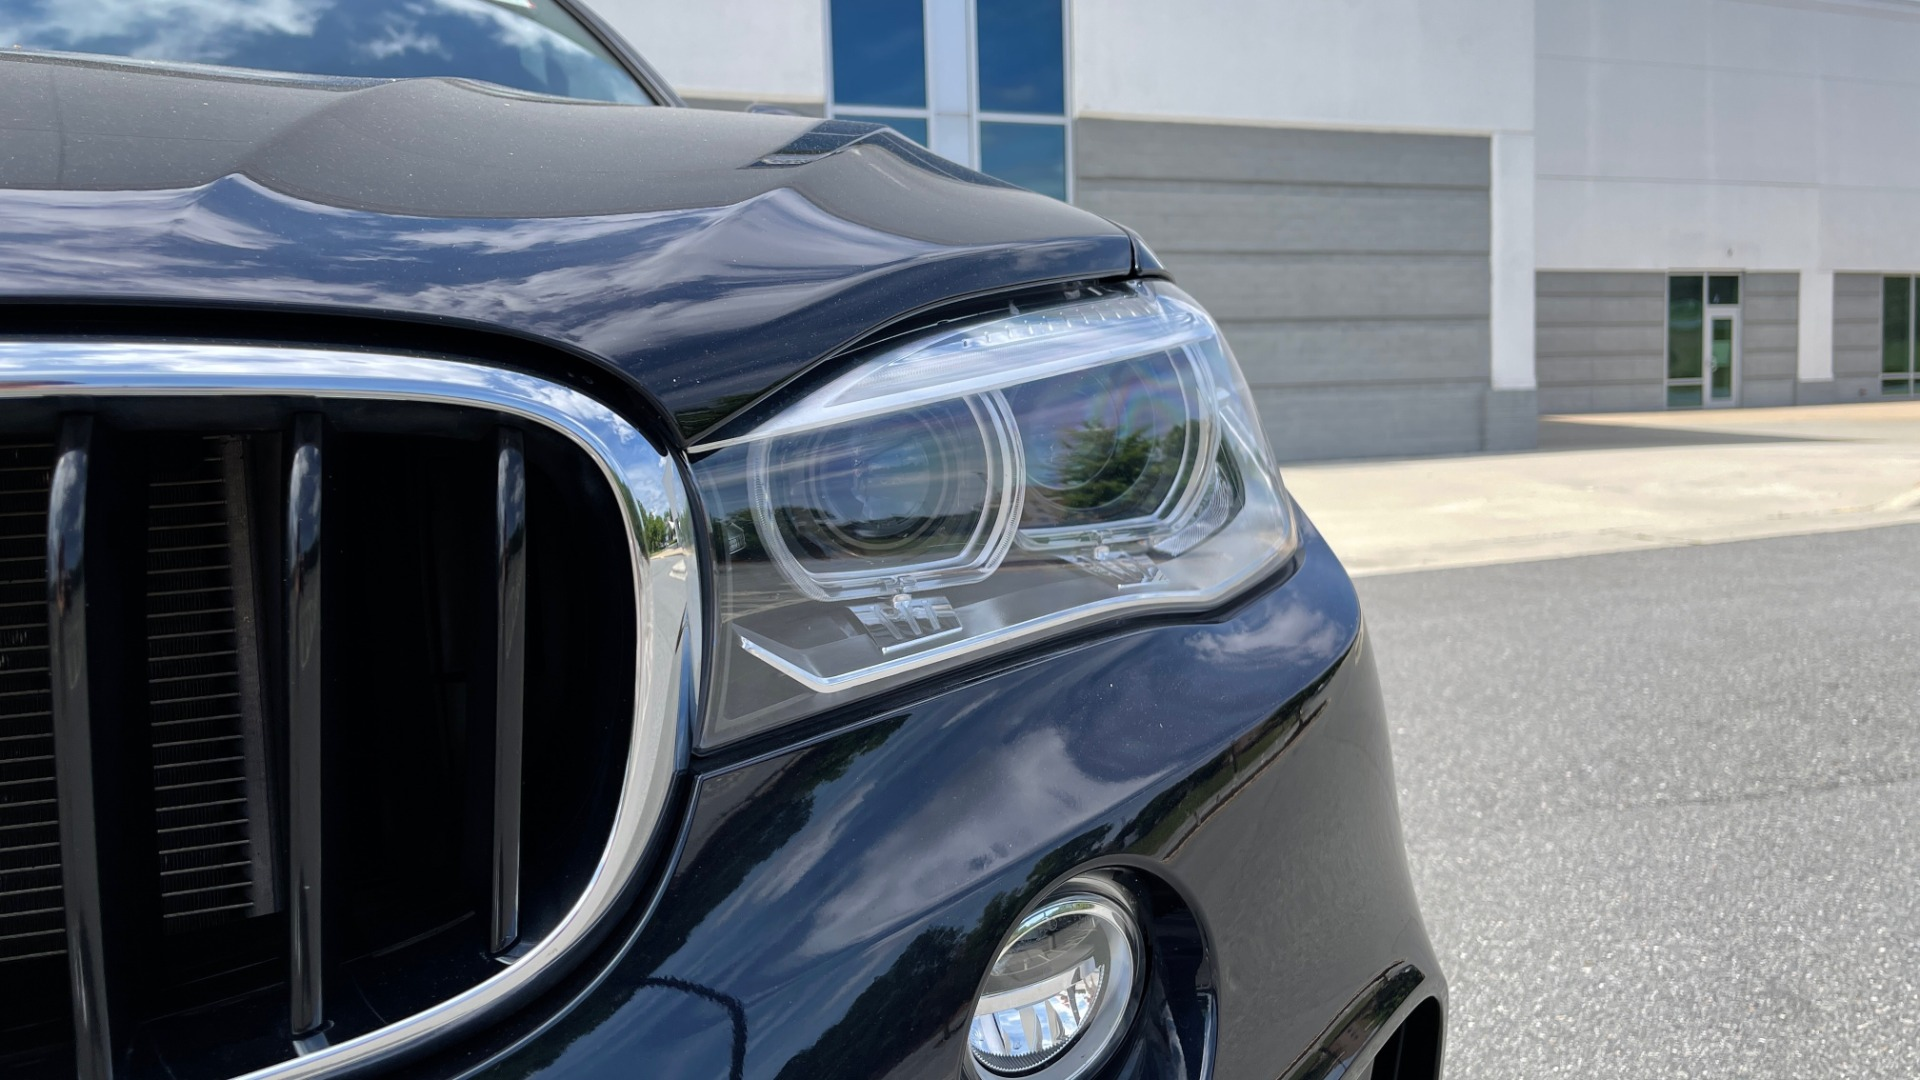 Used 2018 BMW X6 XDRIVE35I M-SPORT / DRVR ASST / PRK ASST / H/K SND / APPLE / WIRELESS CHARG for sale $51,995 at Formula Imports in Charlotte NC 28227 14